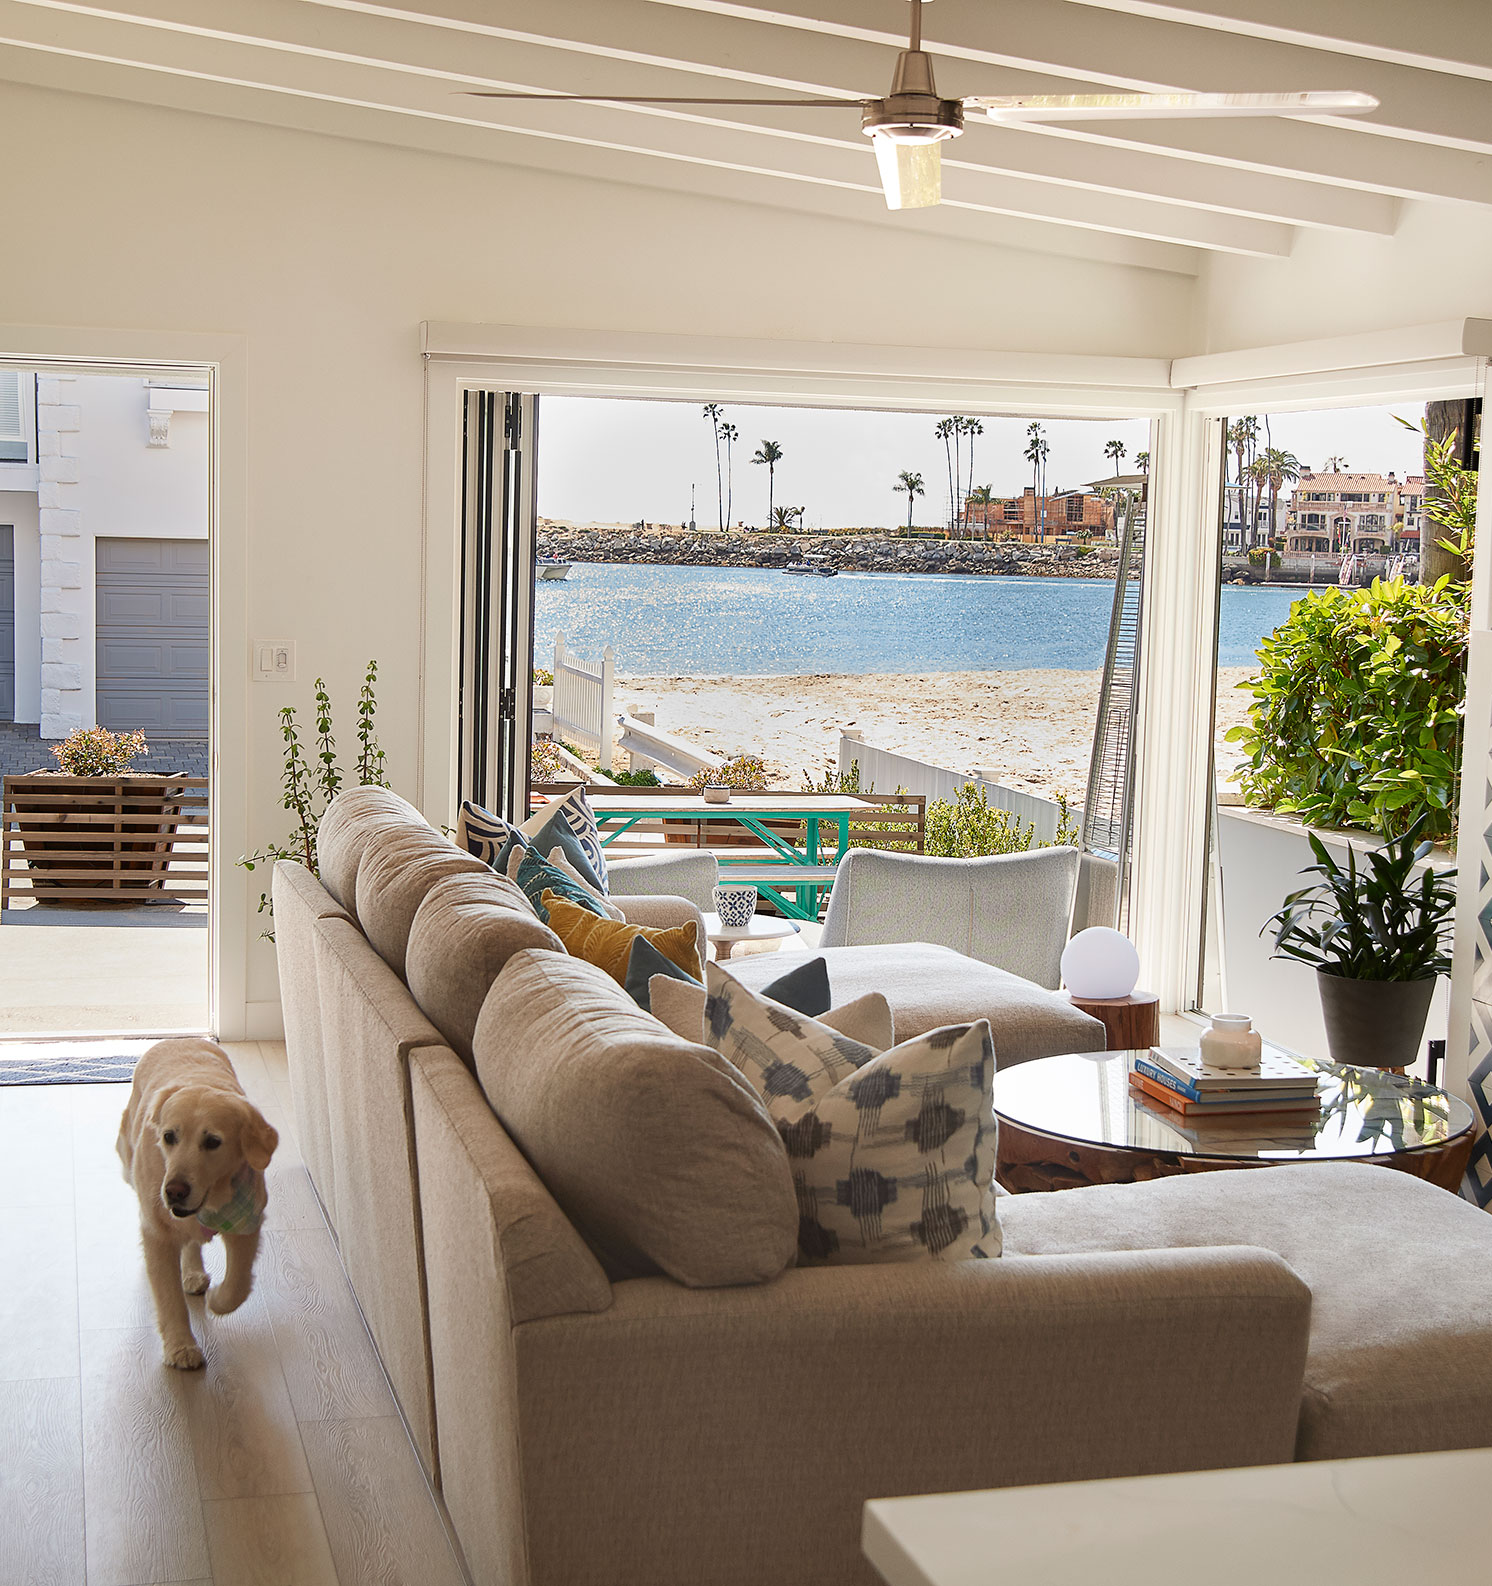 The Folding Door Store's windows, doors, screens and more can bring light and ventilation to your home